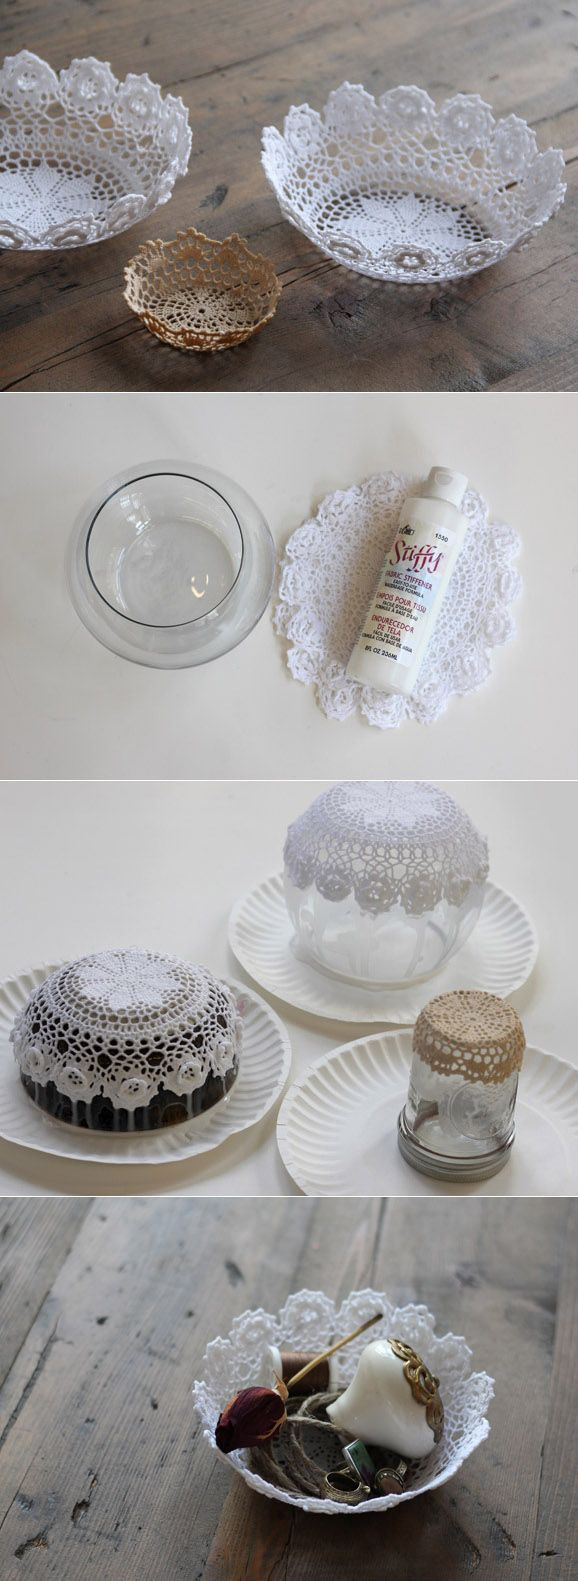 DIY : Lace Doily Bowl - pretty holder for jewelry.  I like the ideaof leaving a little doily on the bottom of the jar for decoration then fill it with spiced tea mix or something for a gift.